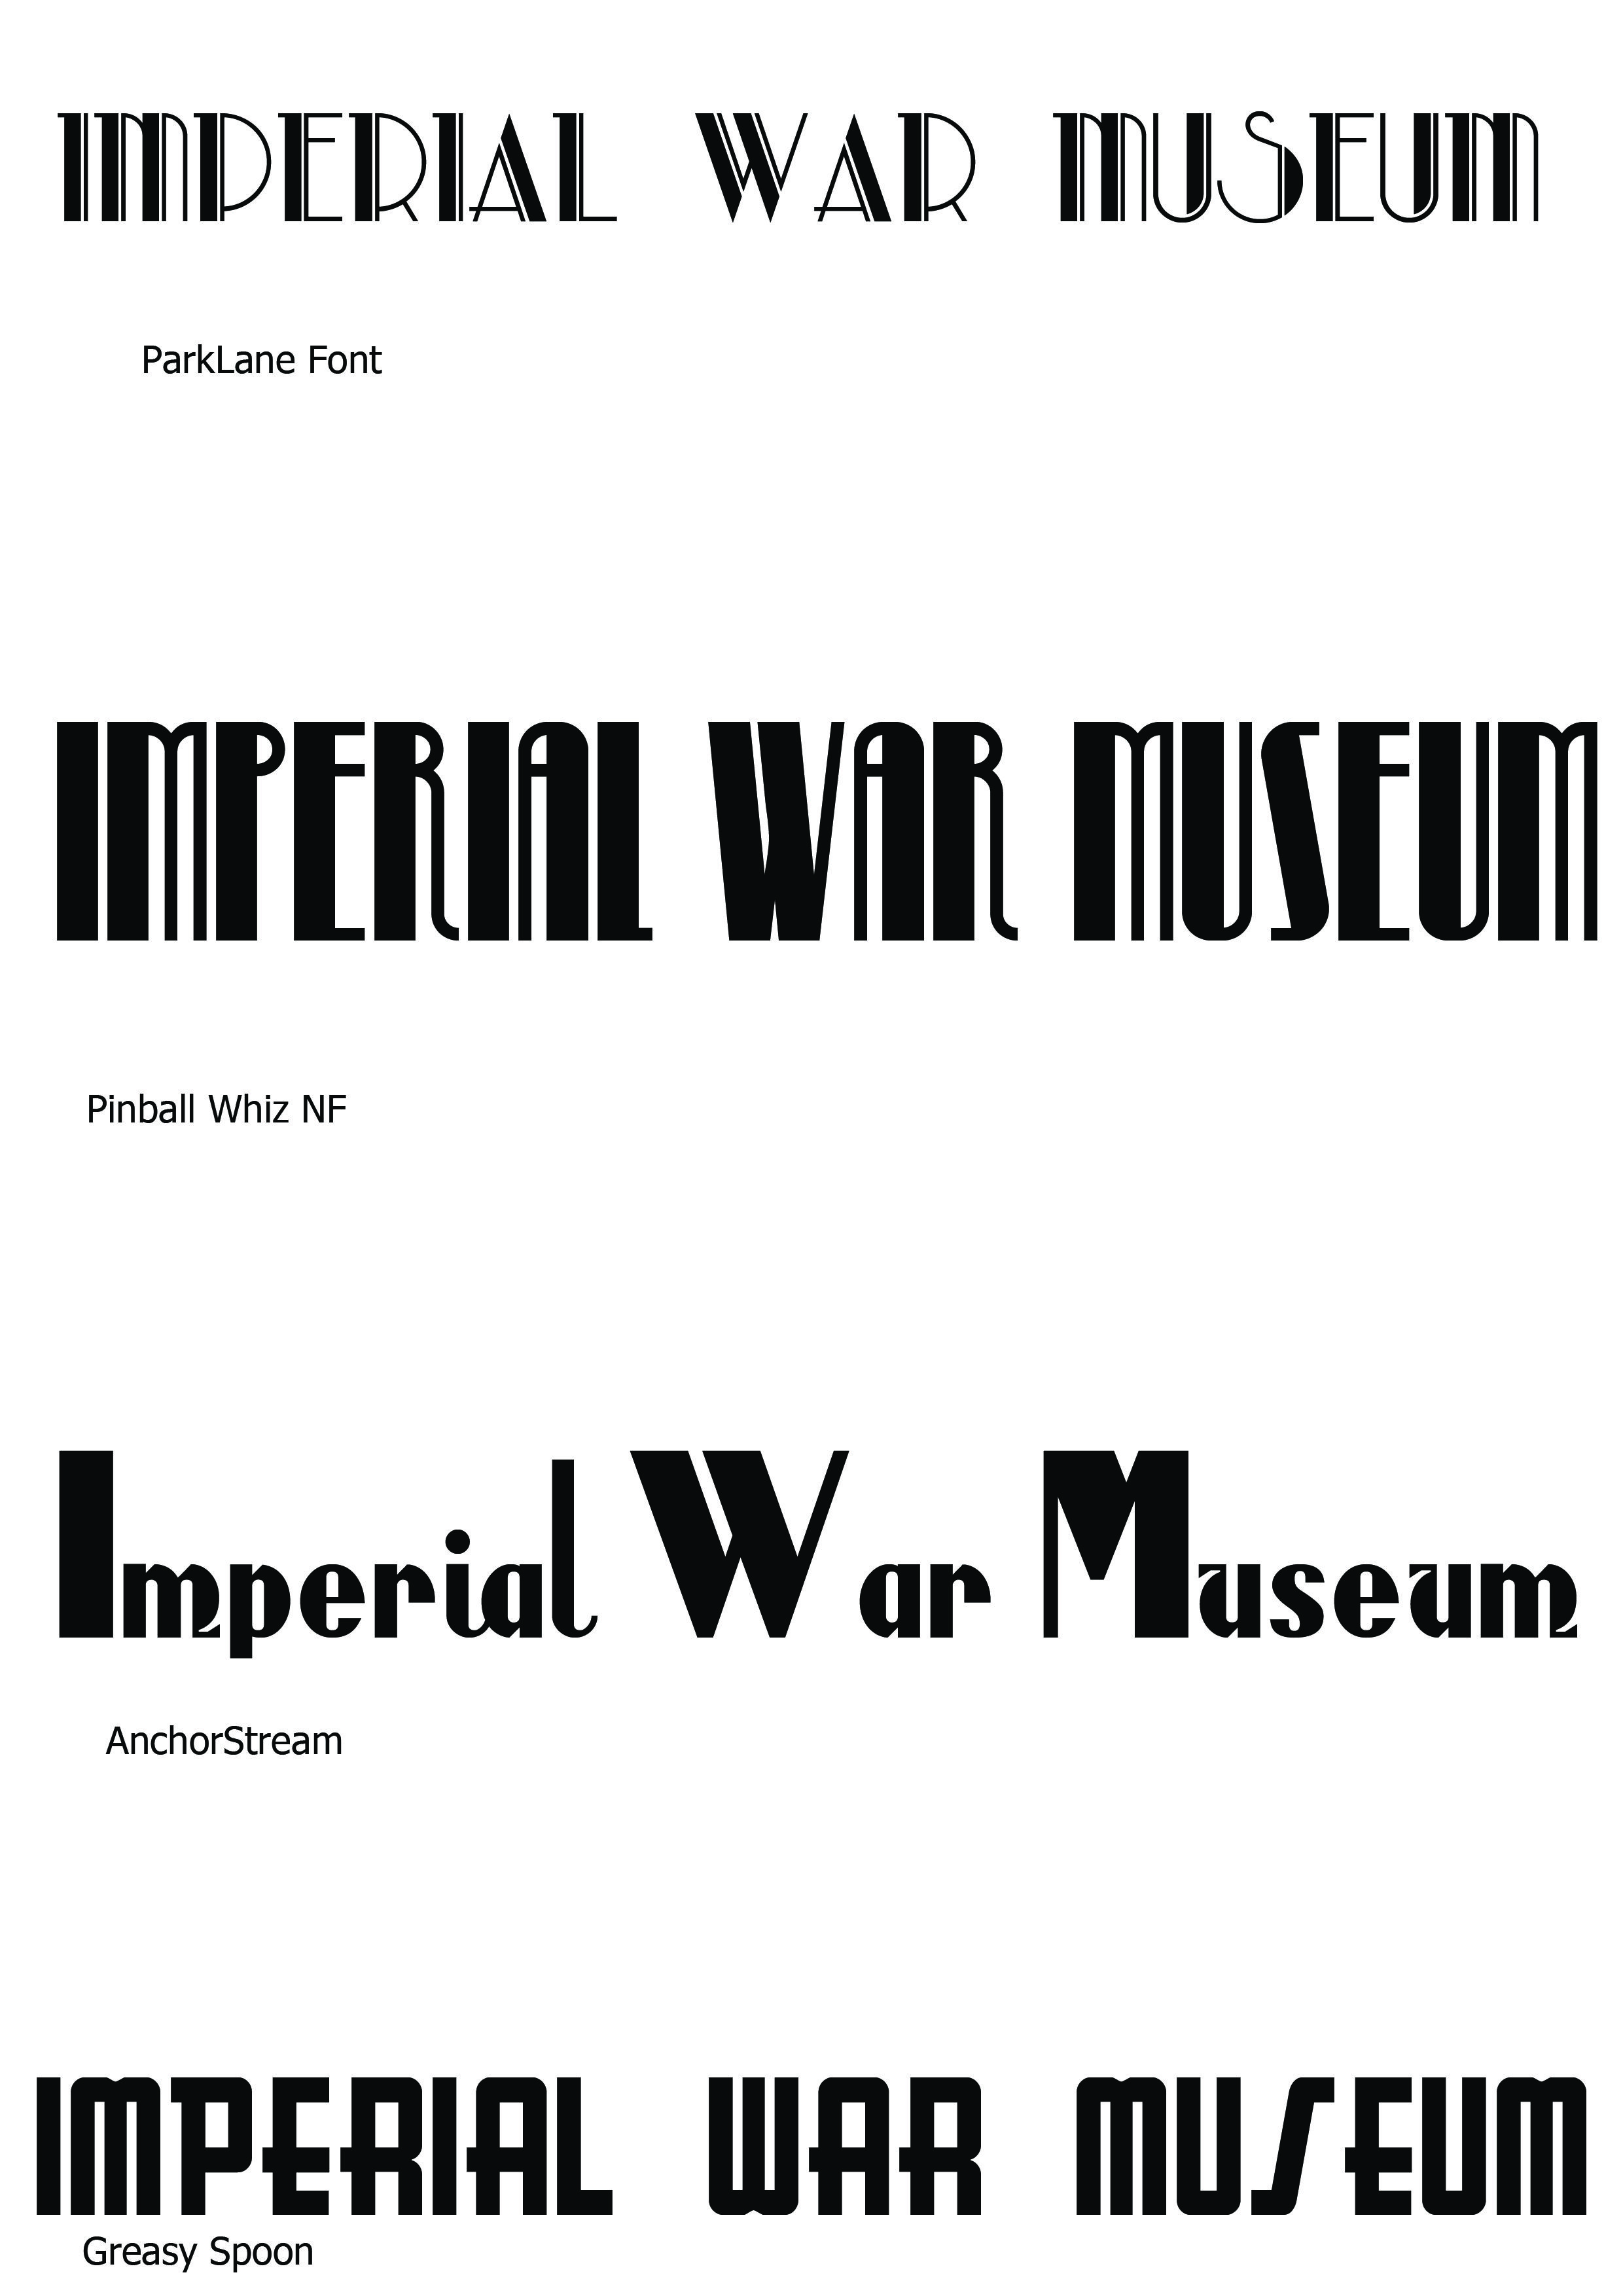 1940 S Poster Typography Fonts Word Art Design Typography